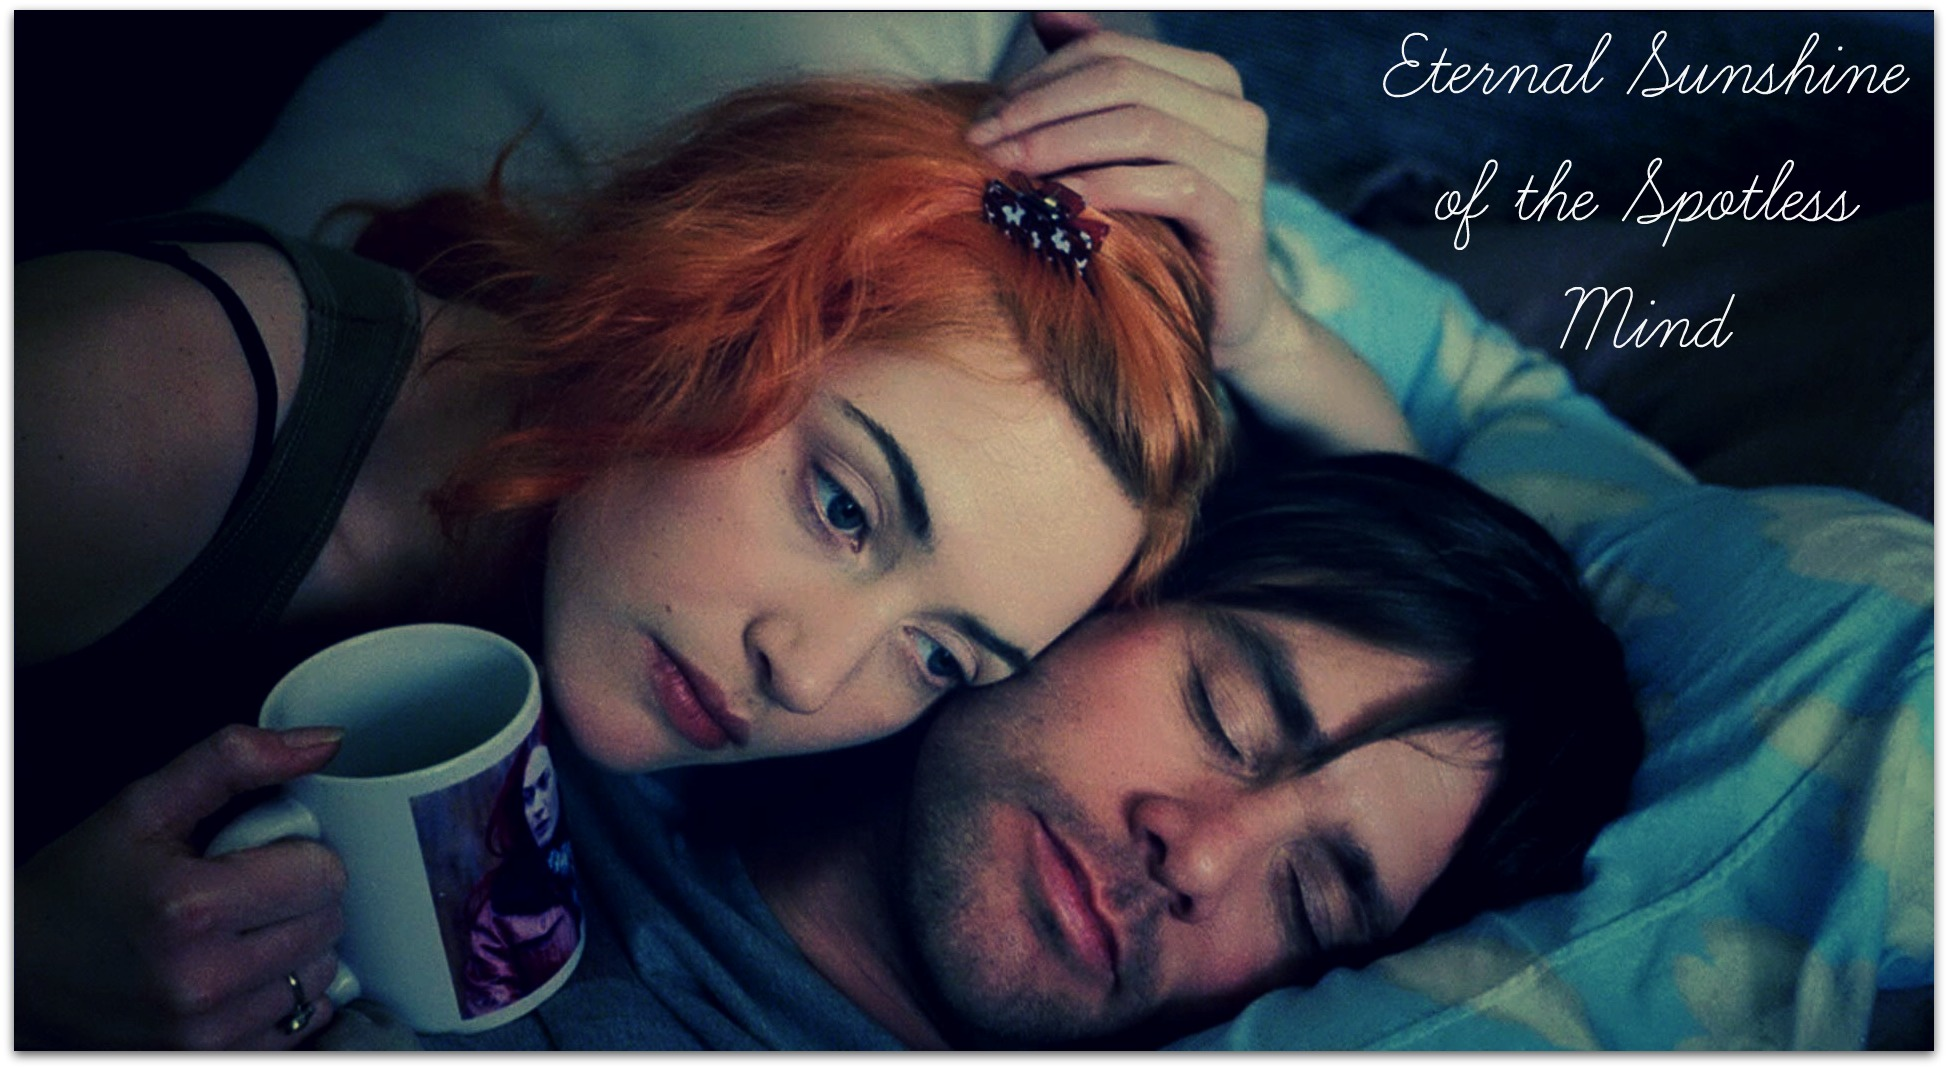 Eternal_sunshine_of_the_spotless_mind_1